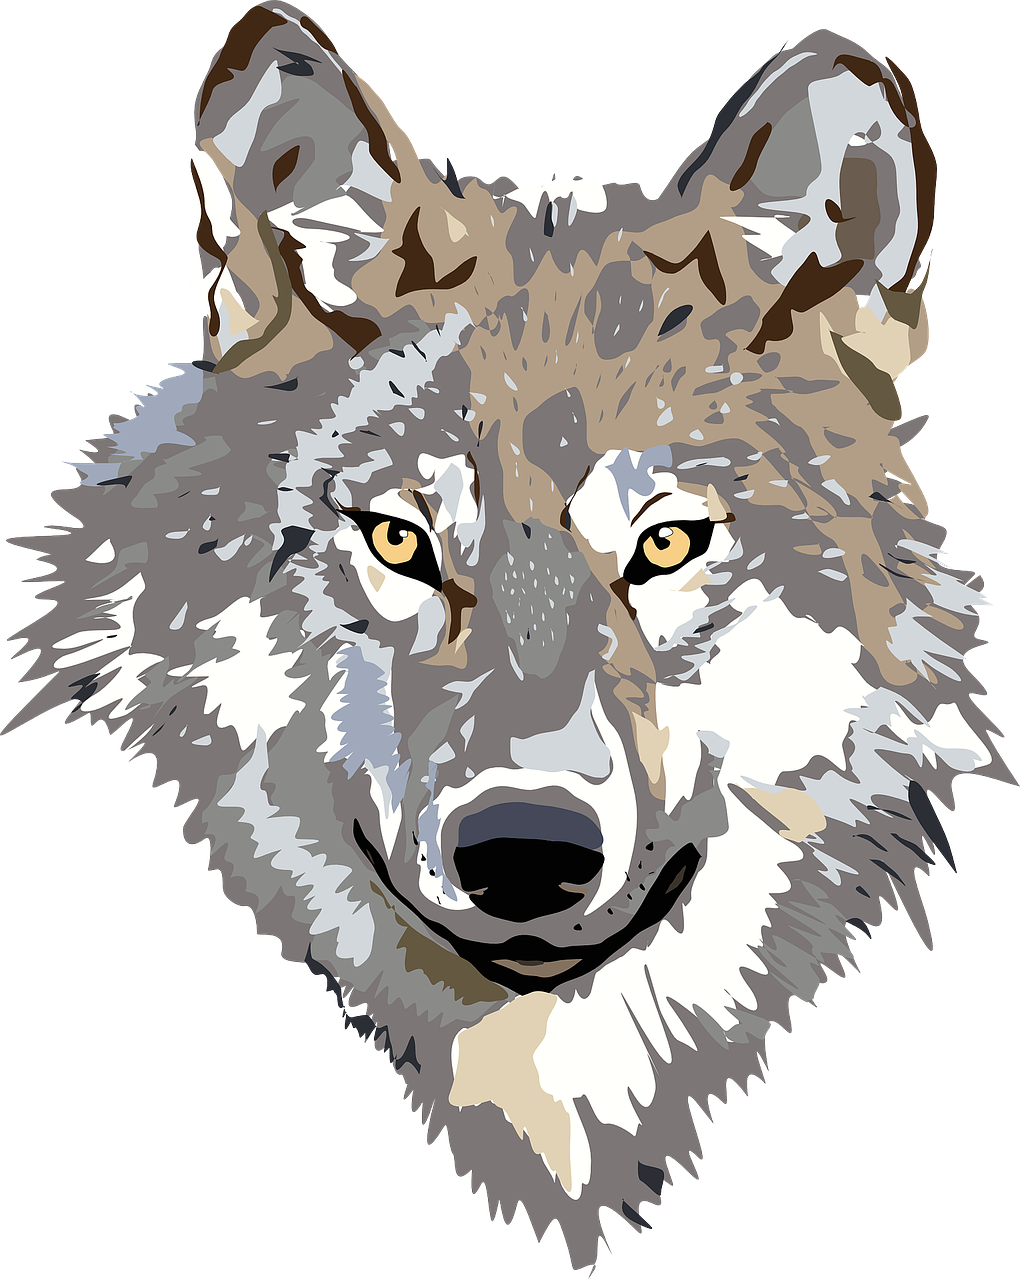 wolf,face,head,gray,brown,animal,wild,predator,wildlife,hunter,mammal,portrait,dangerous,carnivore,malamute,free vector graphics,free pictures, free photos, free images, royalty free, free illustrations, public domain